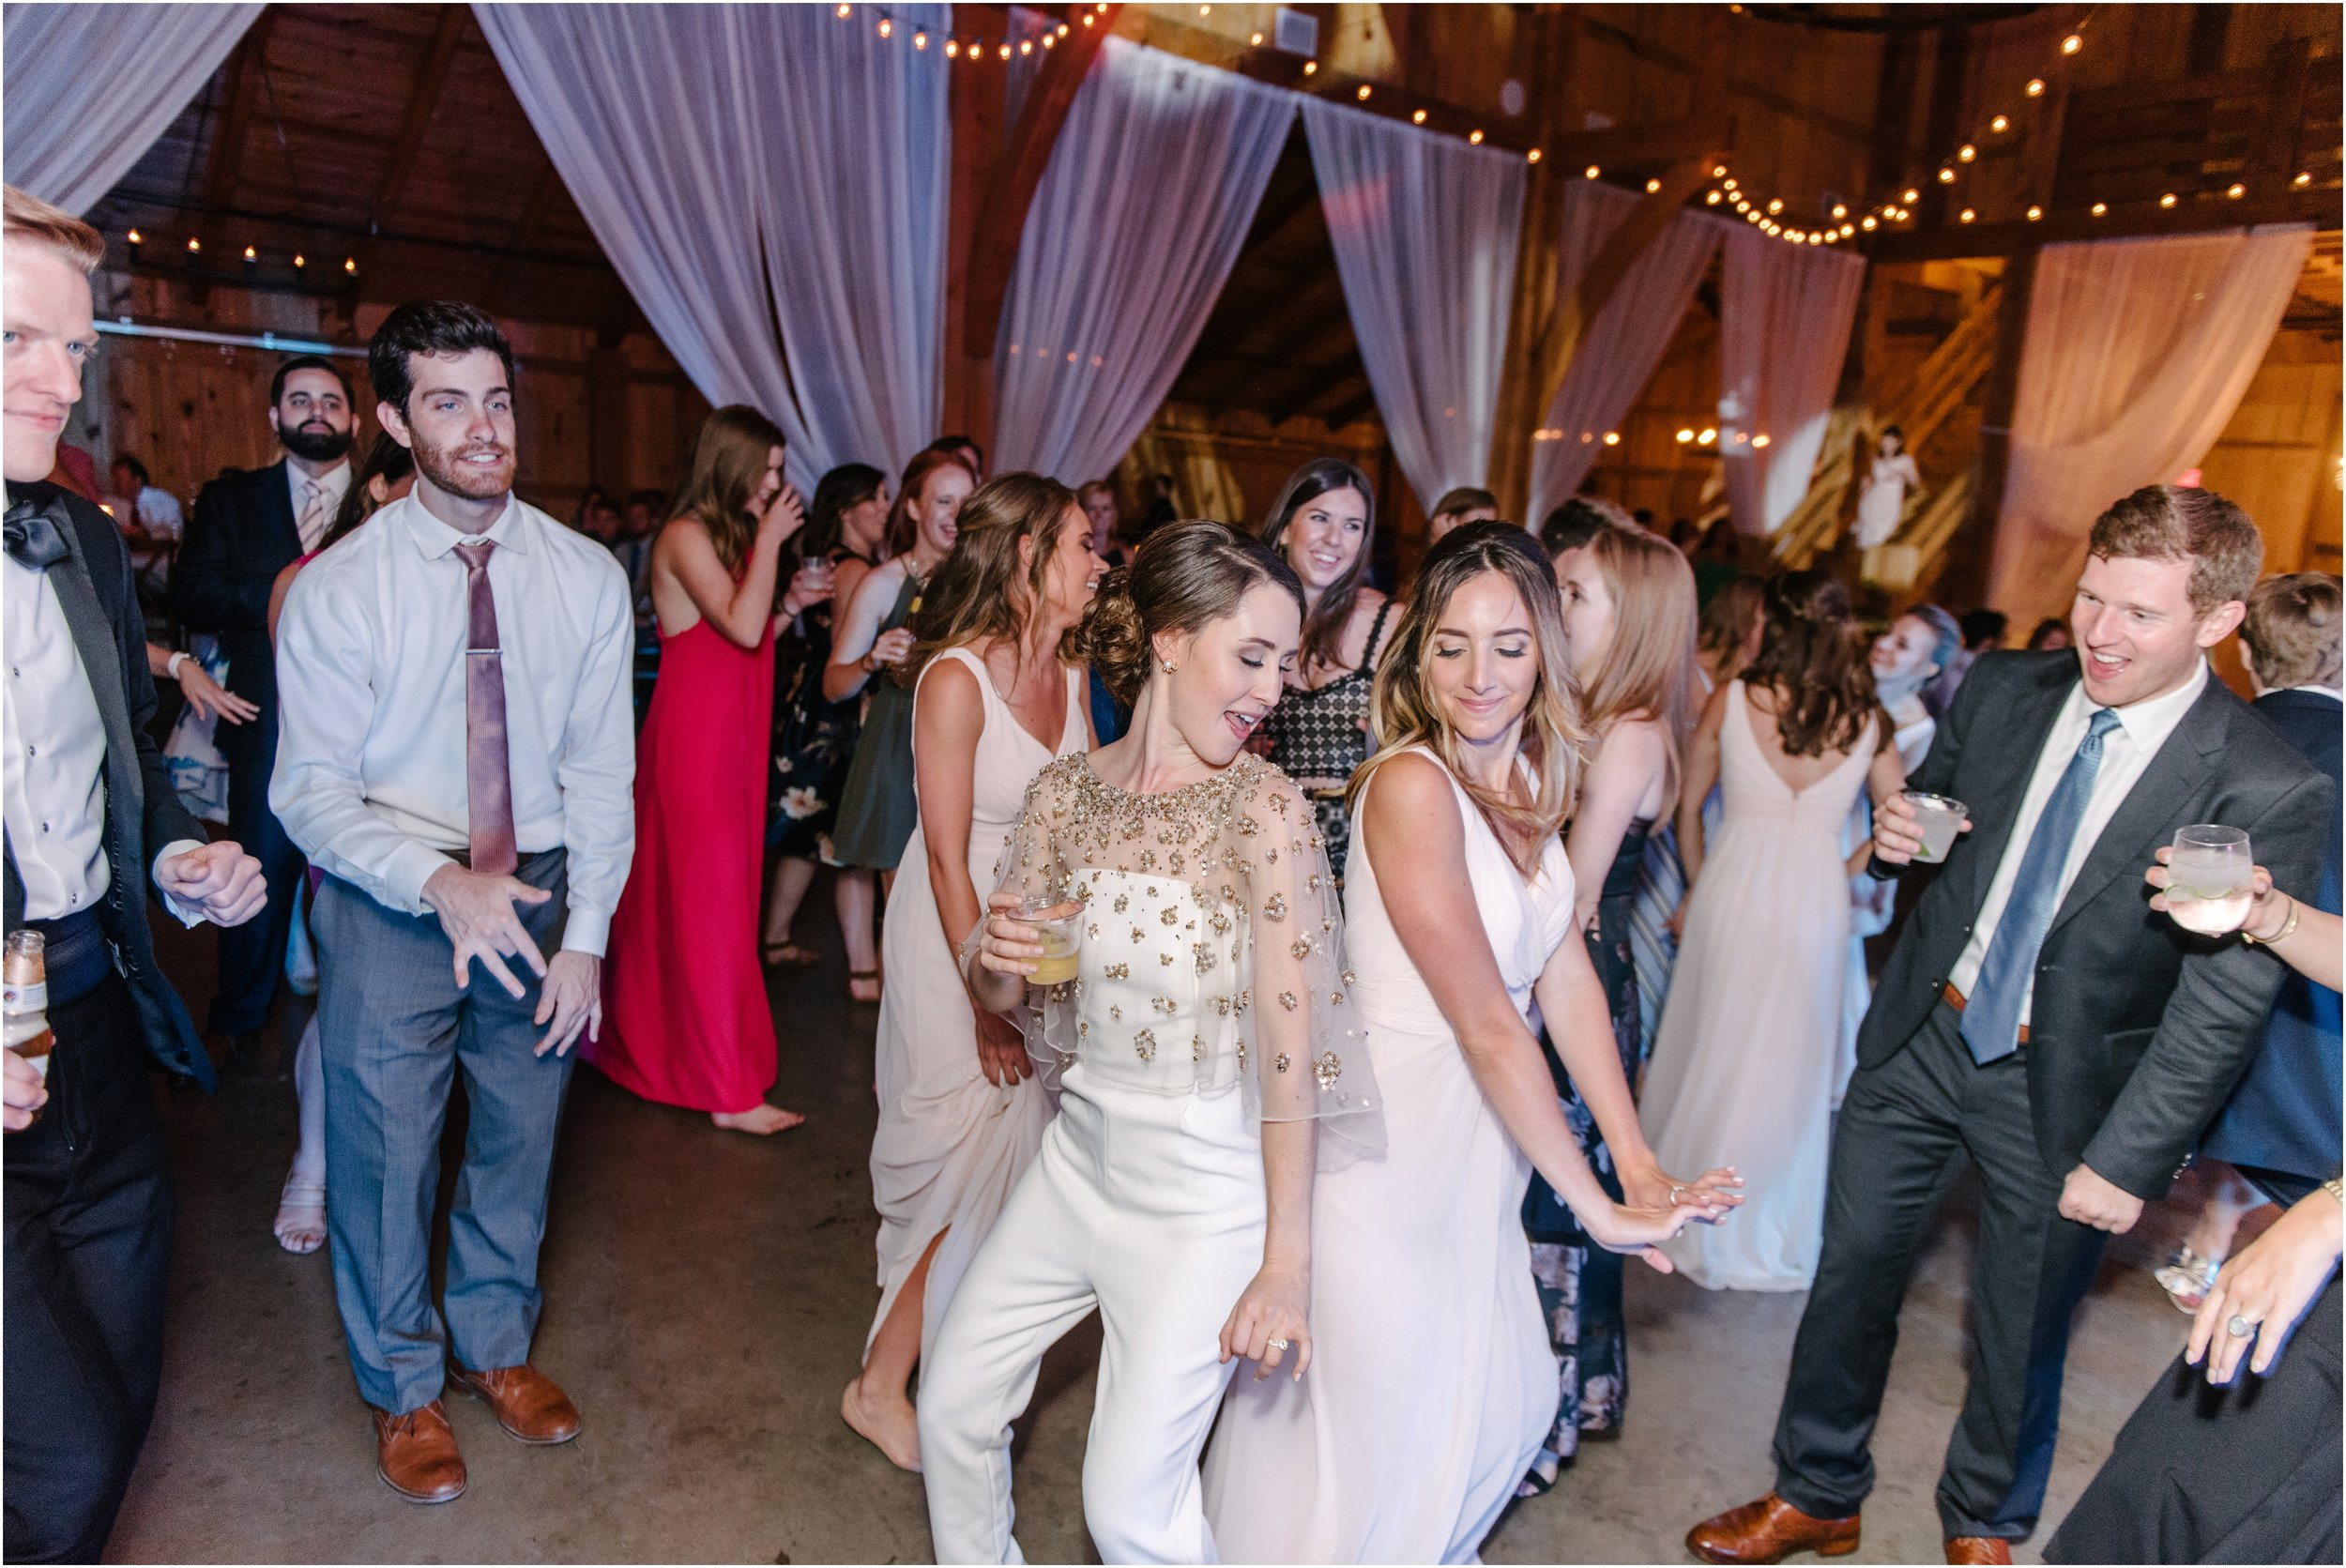 dallasweddingphotographer_fortworthweddingphotographer_texasweddingphotographer_mattandjulieweddings_whiterocklakewedding_KayleighClay_0052.jpg